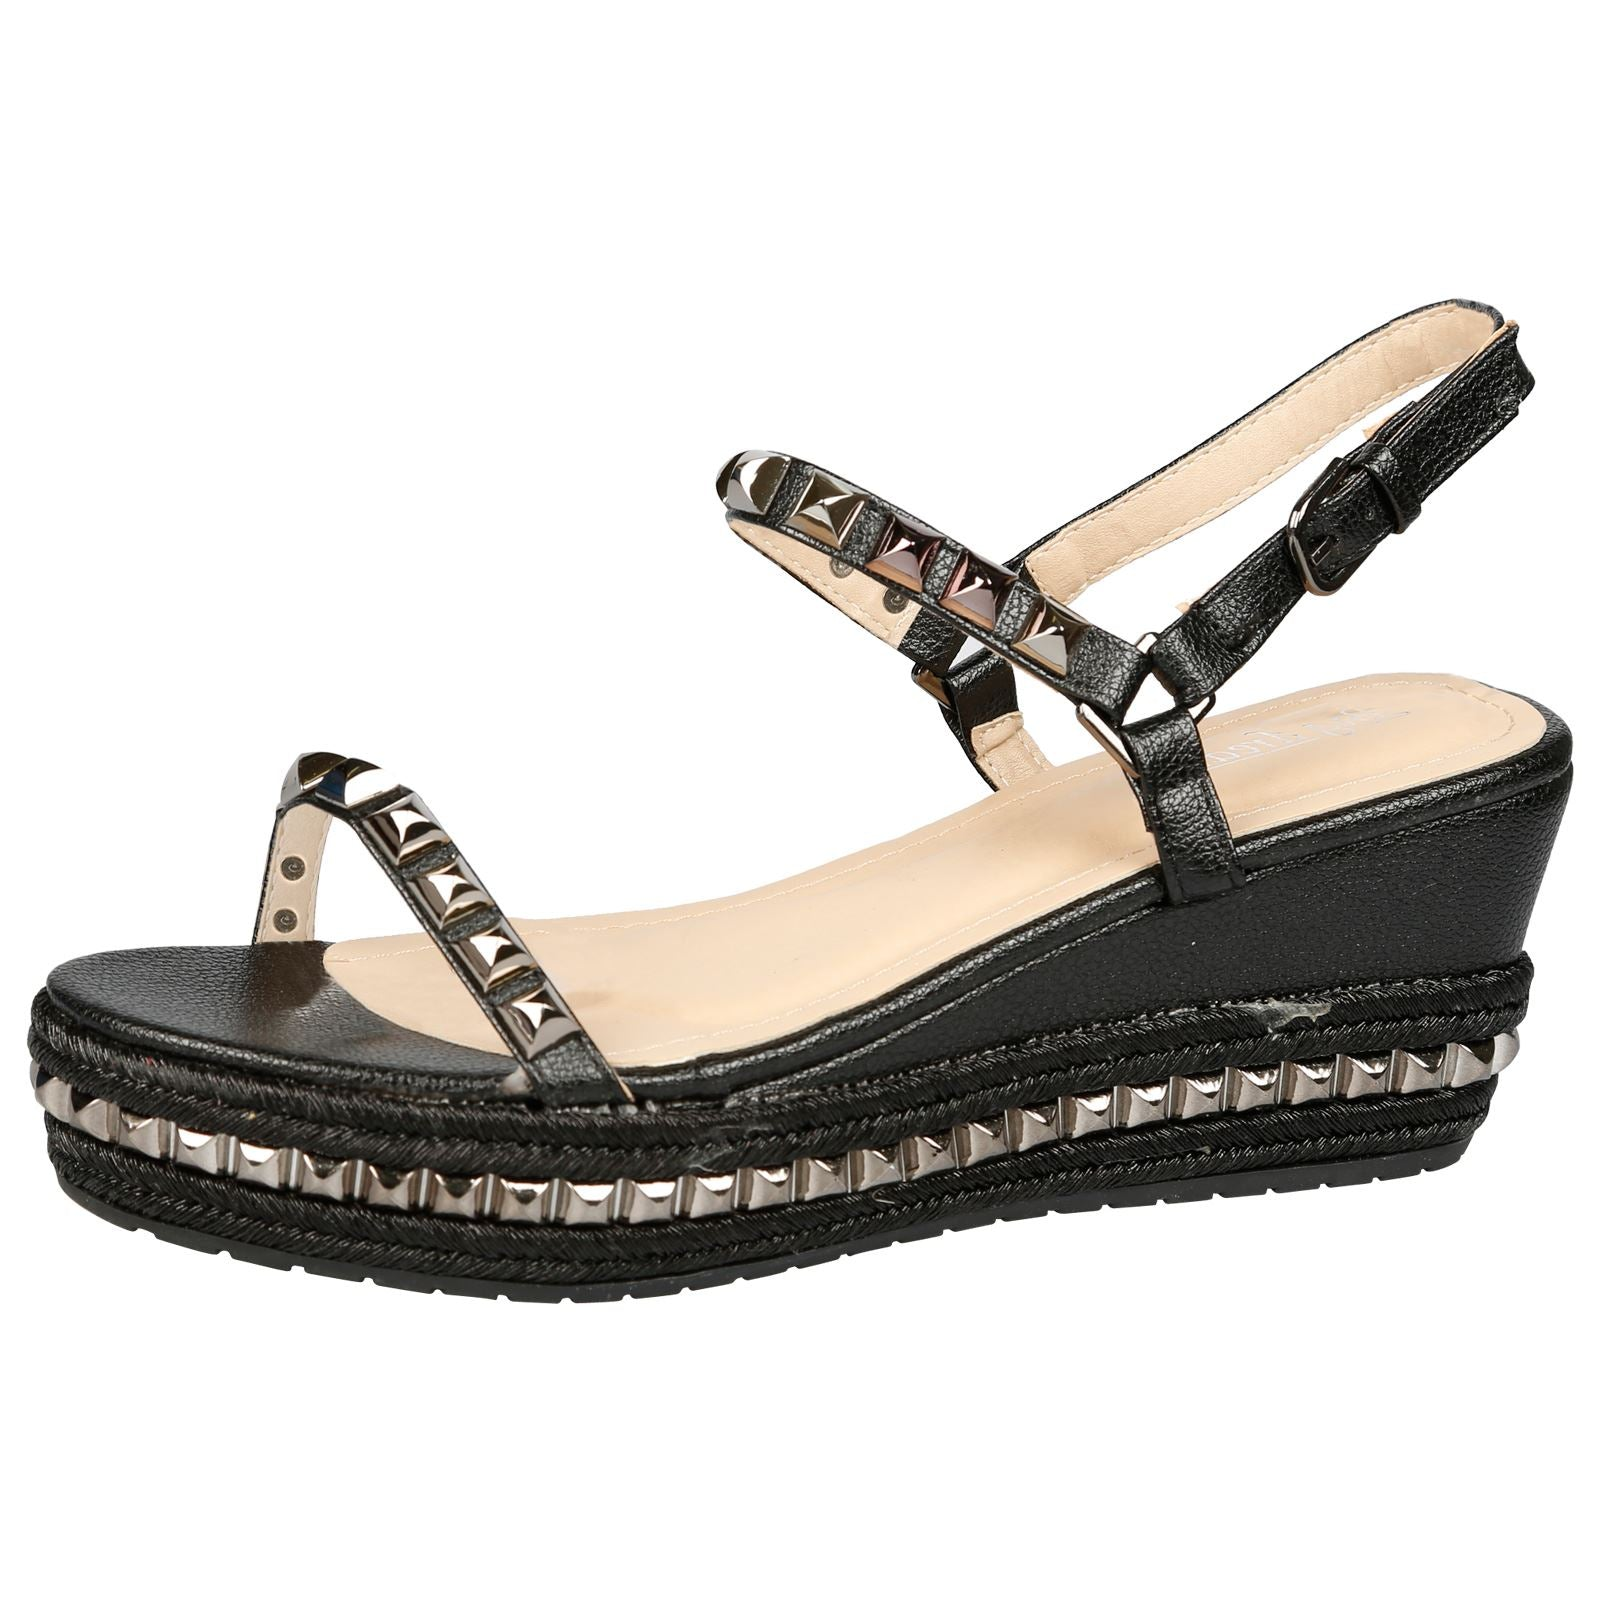 51ddb3b3aba1 Tiffany Studded Platform Wedge Espadrille Sandals in Black Faux Leather